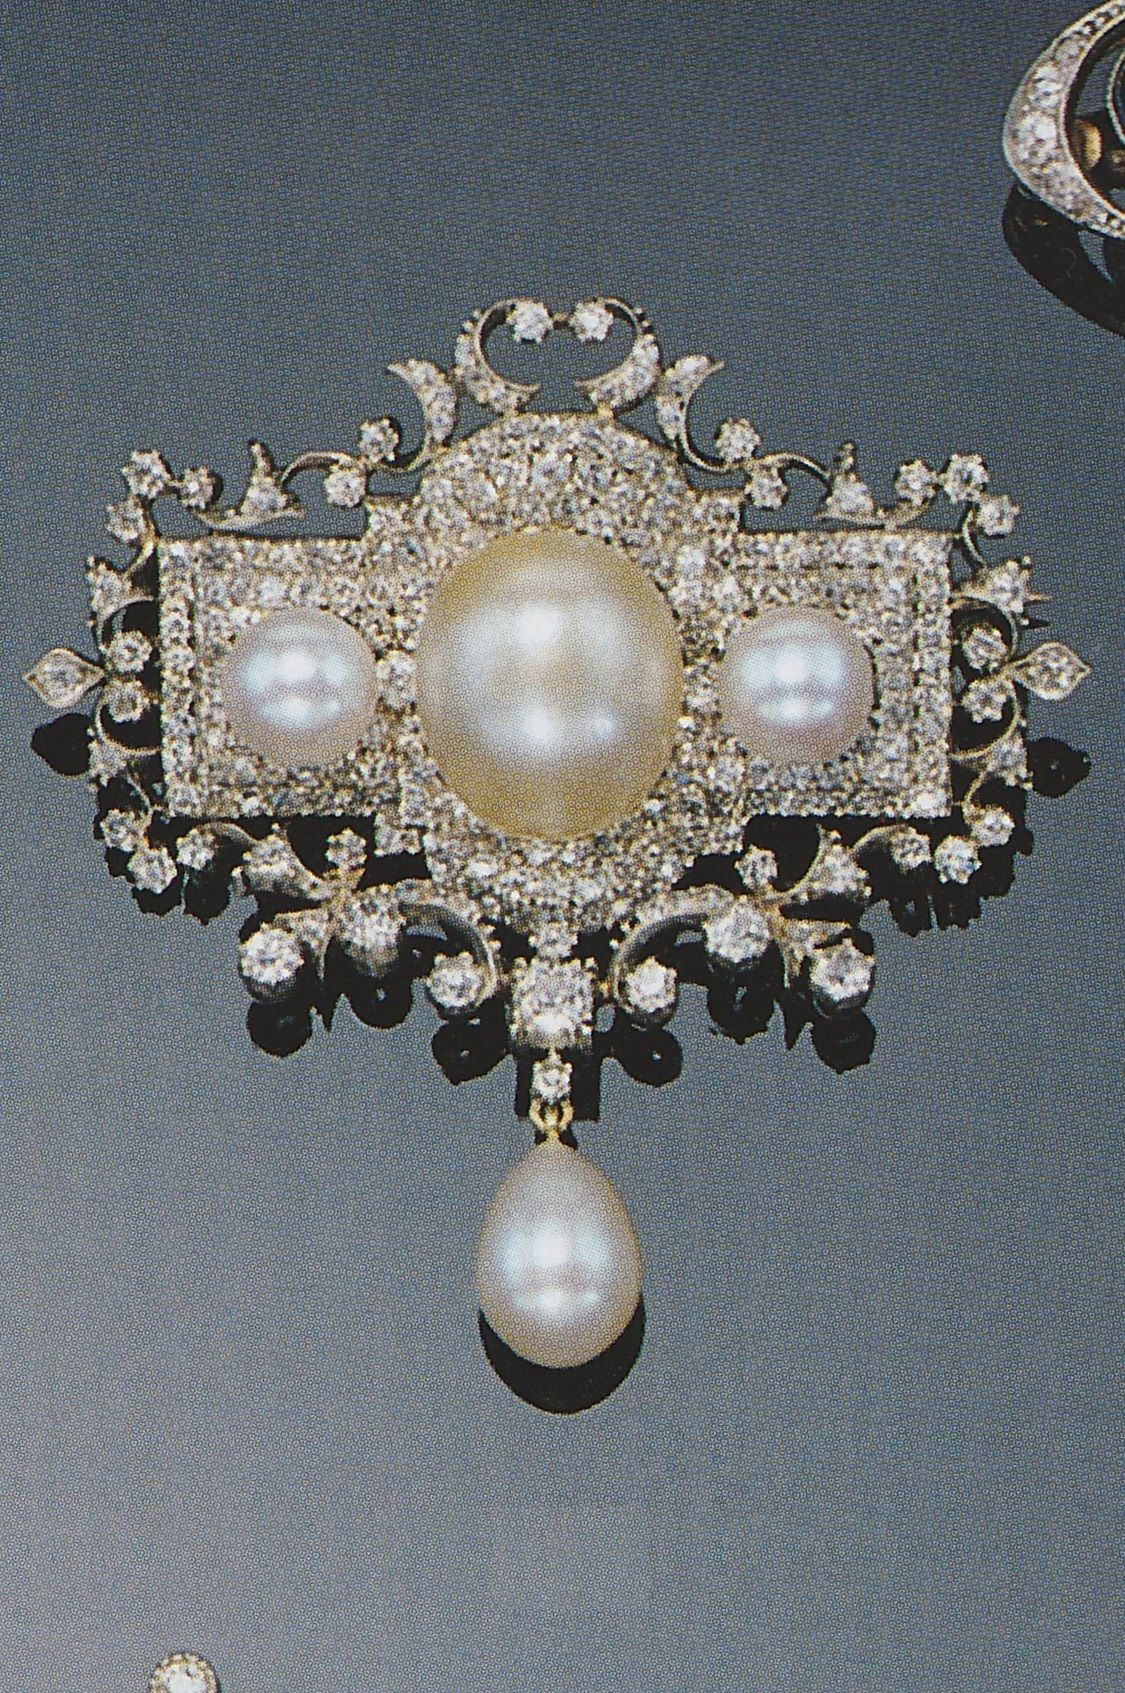 A Belle Epoque pearl and diamond brooch, circa 1900. Of cartouche design, set with circular-cut diamonds and decorated with three pearls, supporting a pear-shaped pearl drop. Source: Sotheby's, Art Nouveau Jewellery and Jewels from the Belle Epoque 1890-1914, London, 18 June, 1998. #BelleÉpoque #brooch